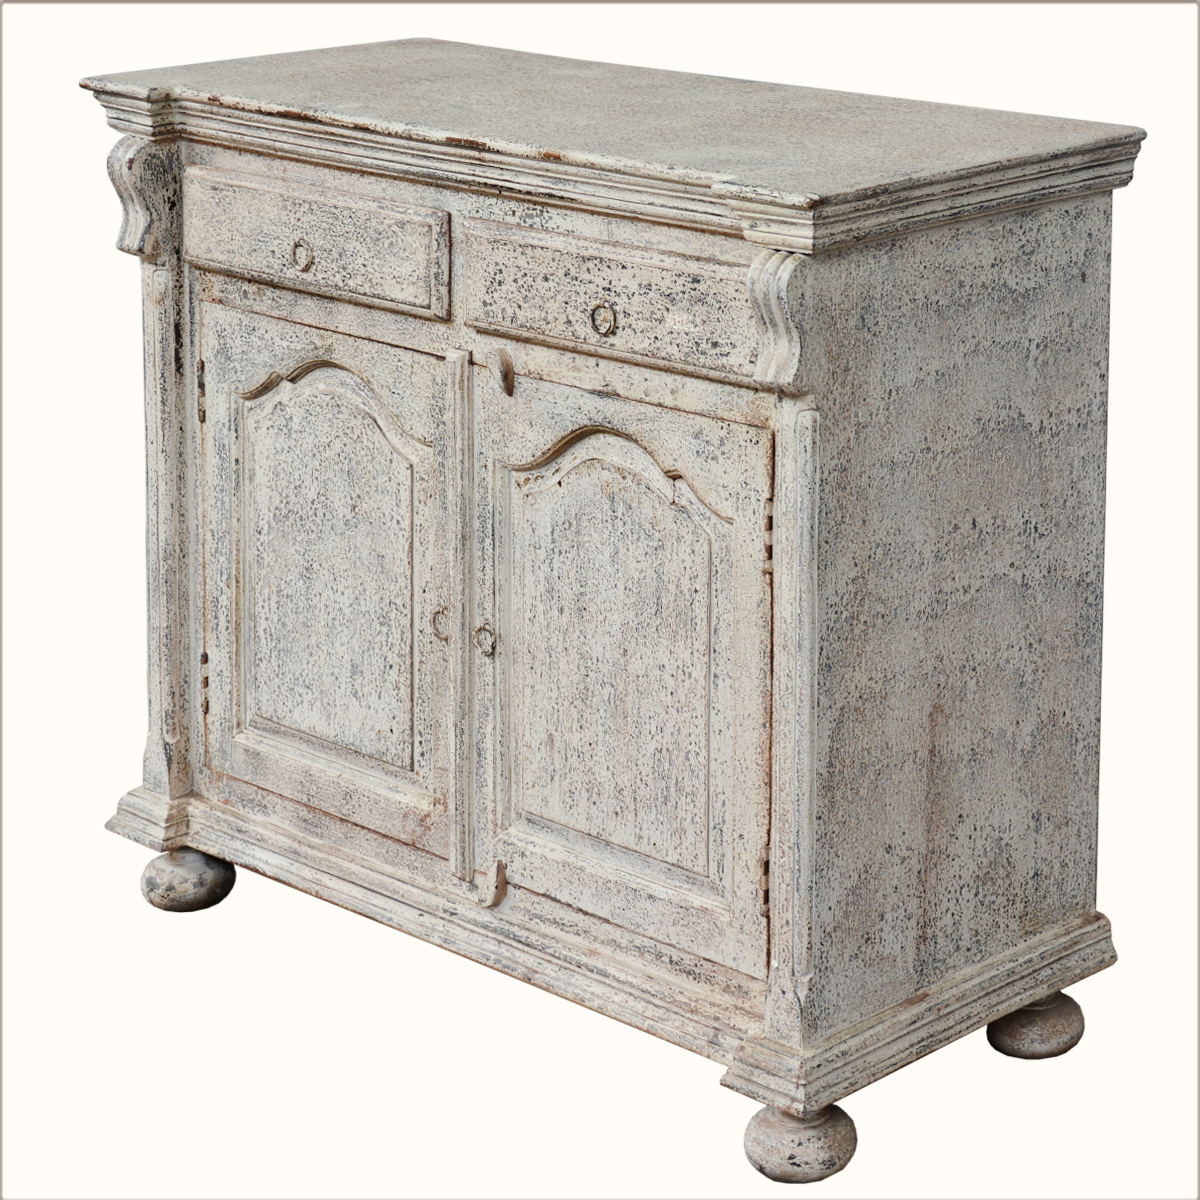 Reclaimed Wood White Rustic Distressed Sideboard Storage